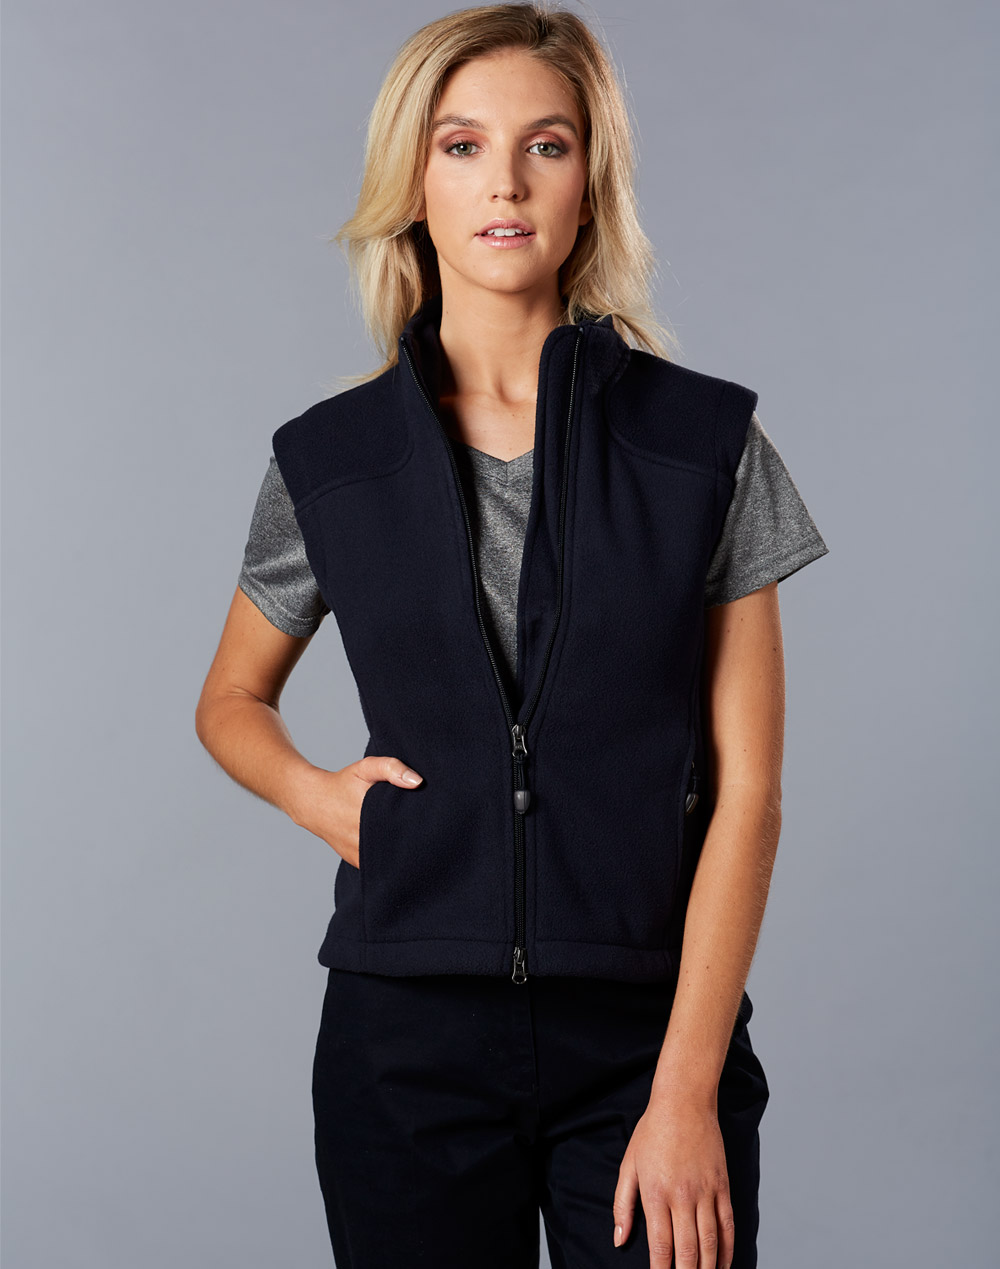 Ladies' bonded polar fleece vest